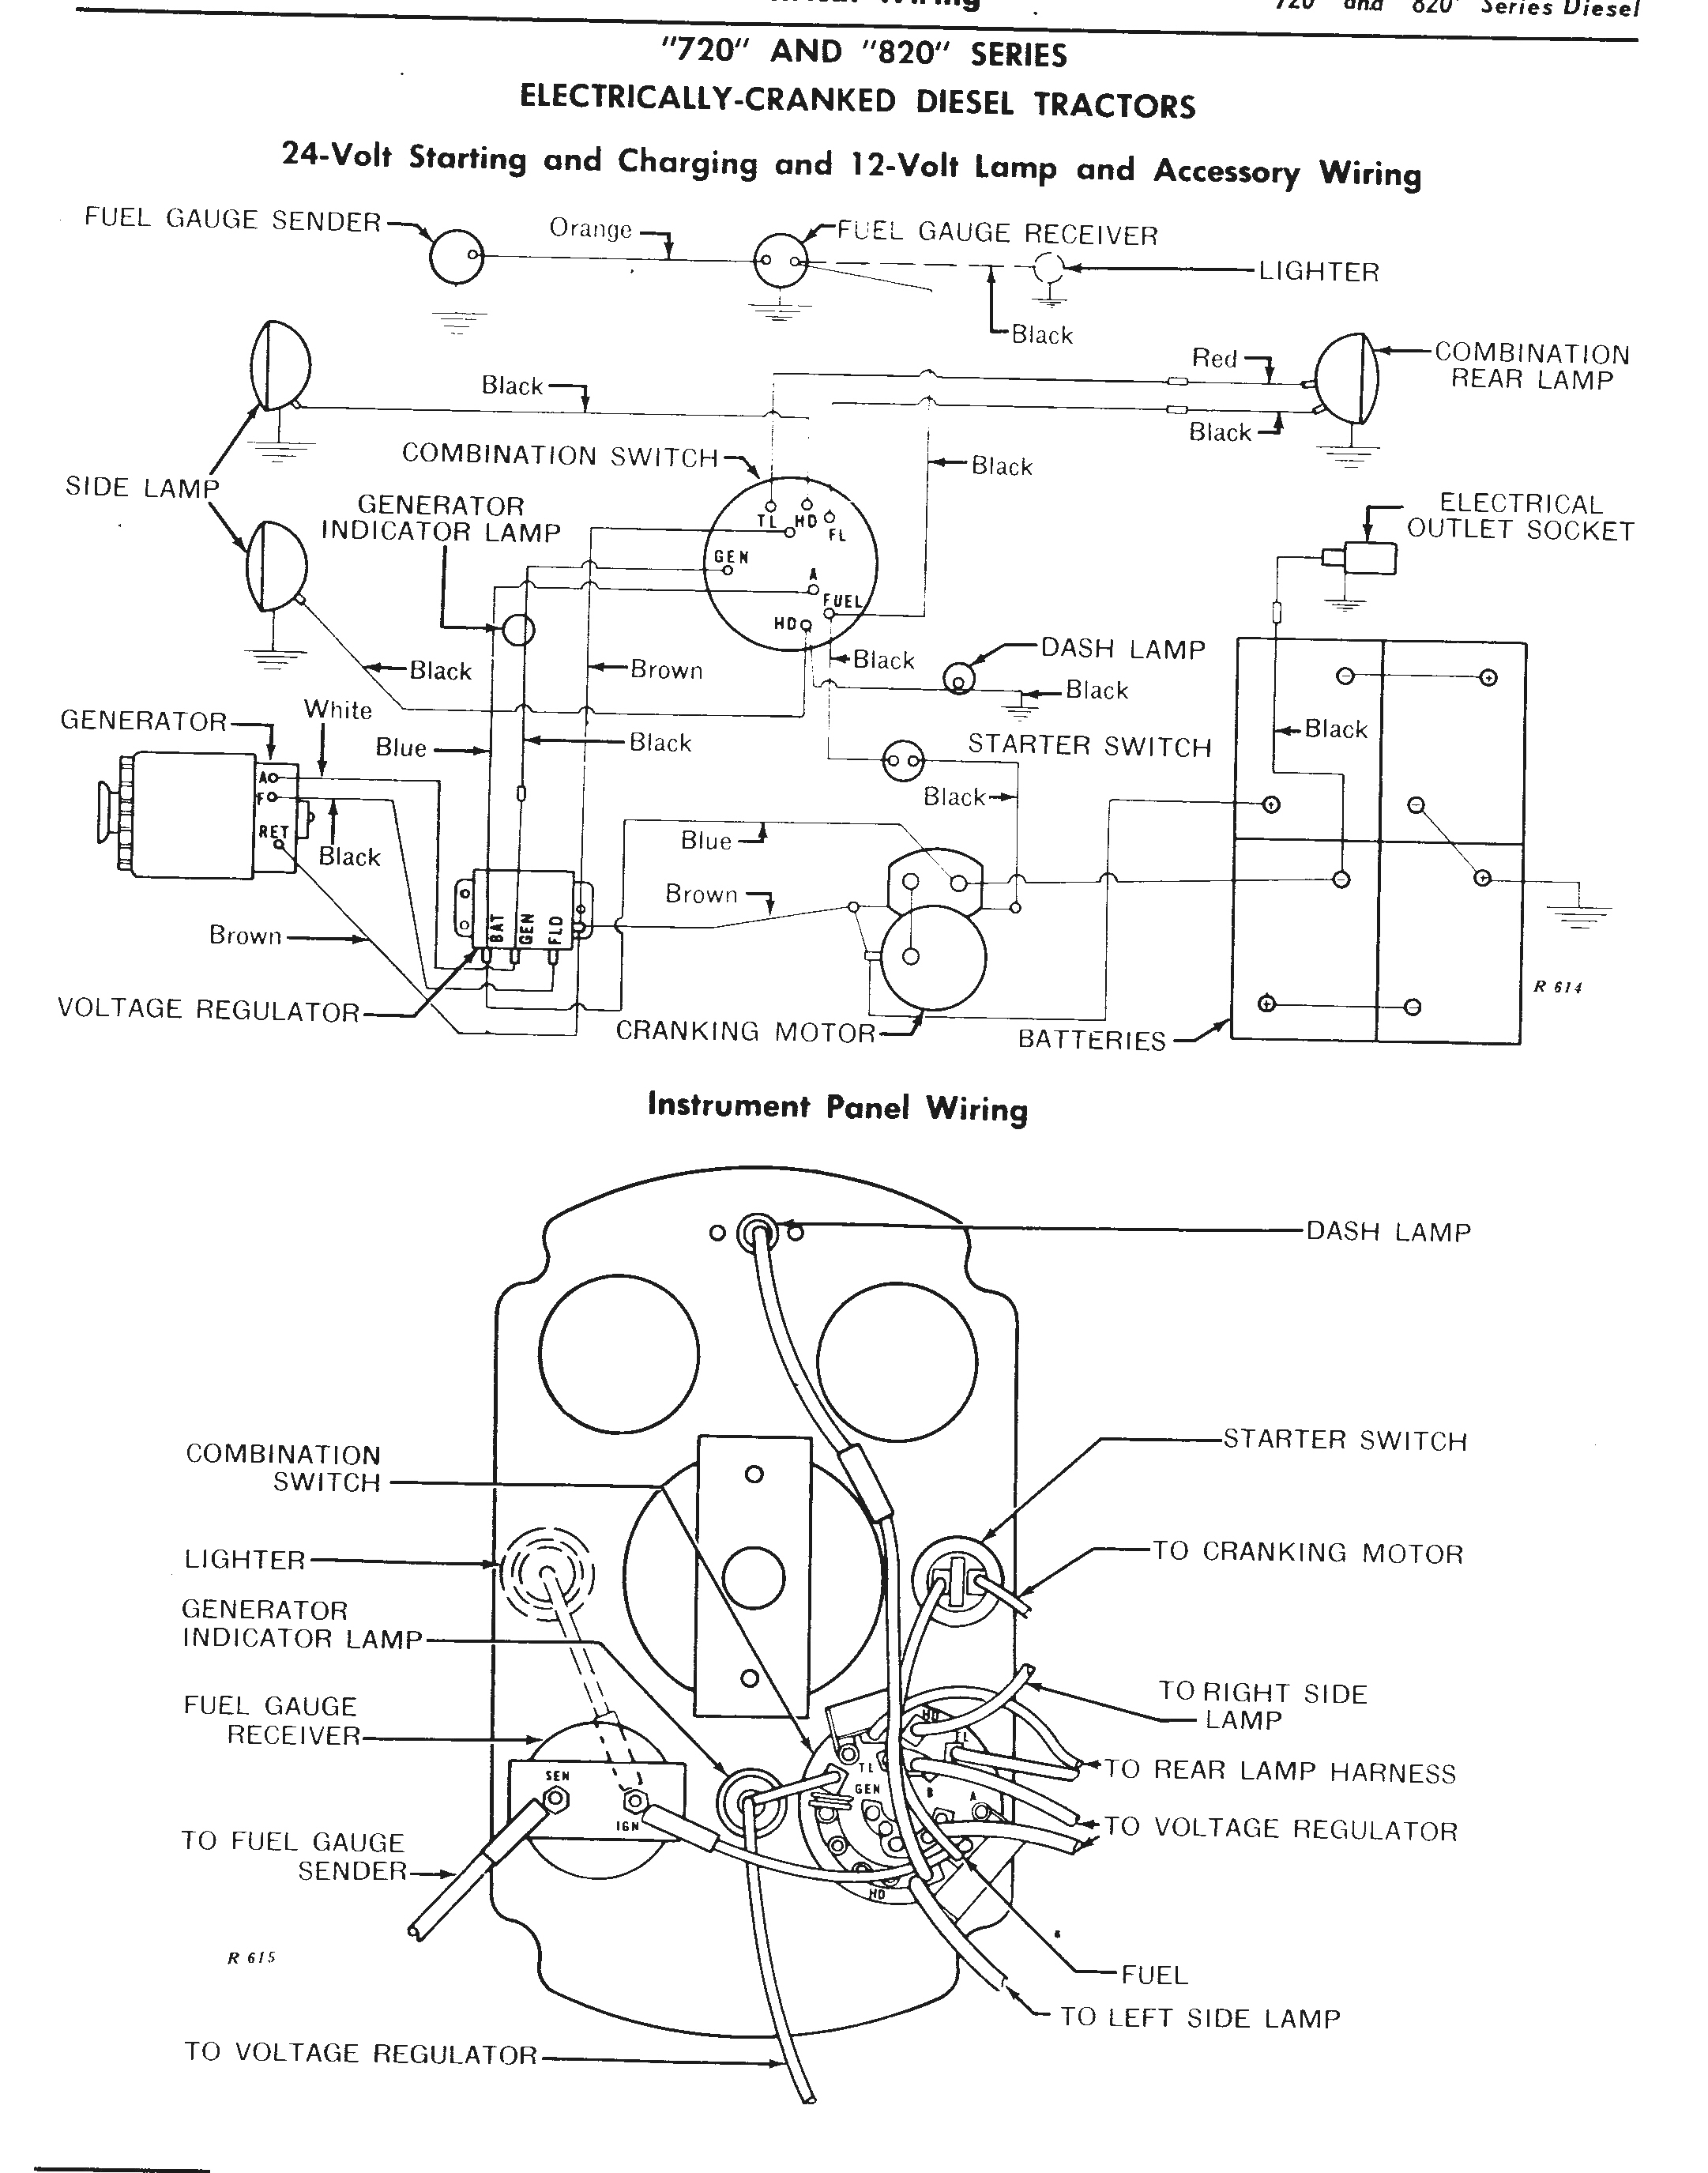 deere_24v_wiring the john deere 24 volt electrical system explained john deere 212 wiring diagram at bayanpartner.co